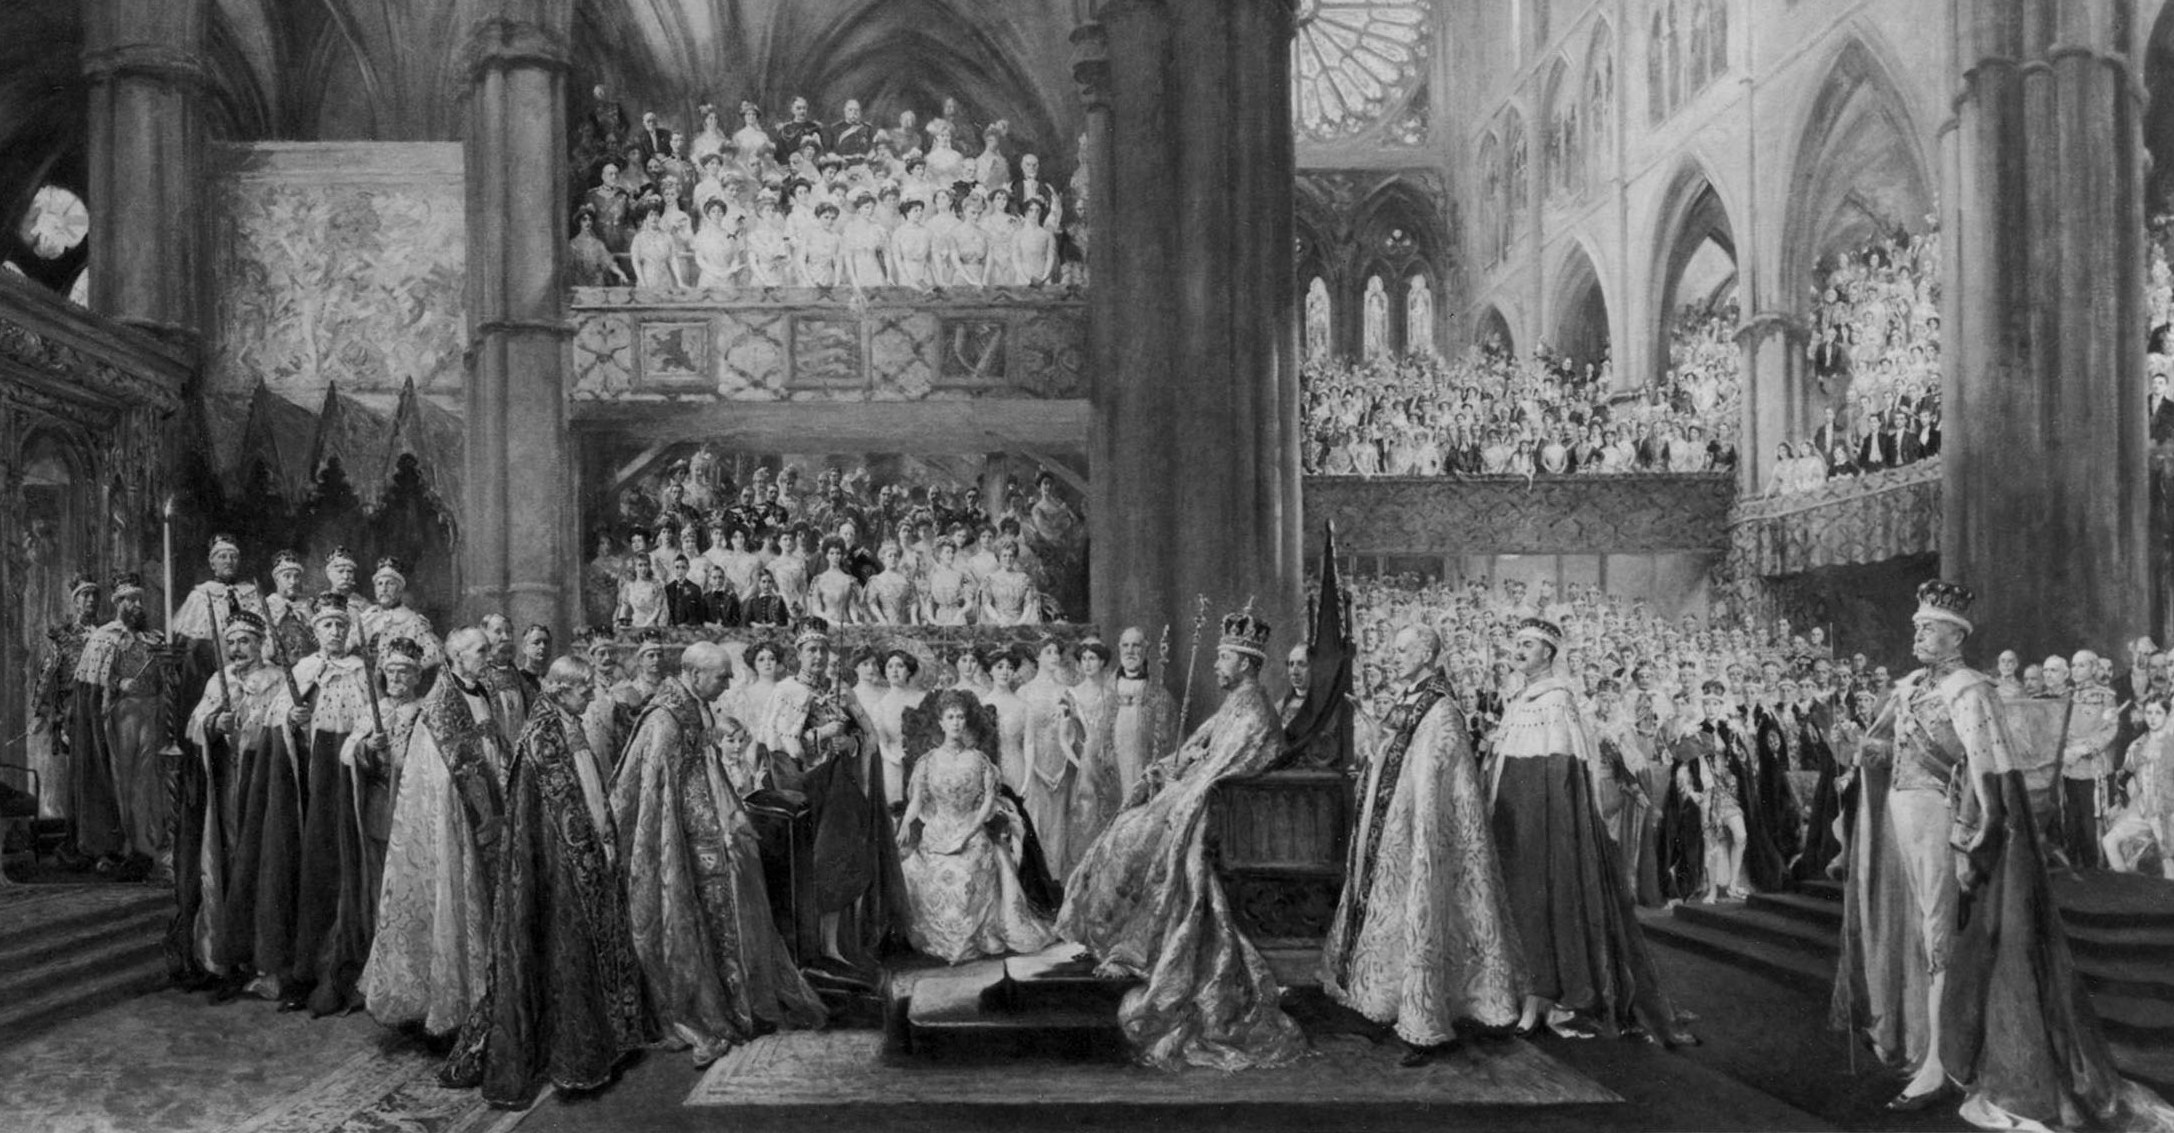 The_Coronation_Ceremony_of_His_Most_Gracious_Majesty_King_George_V_in_Westminster_Abbey__22nd_June_1911_by_John_Henry_Frederick_Bacon